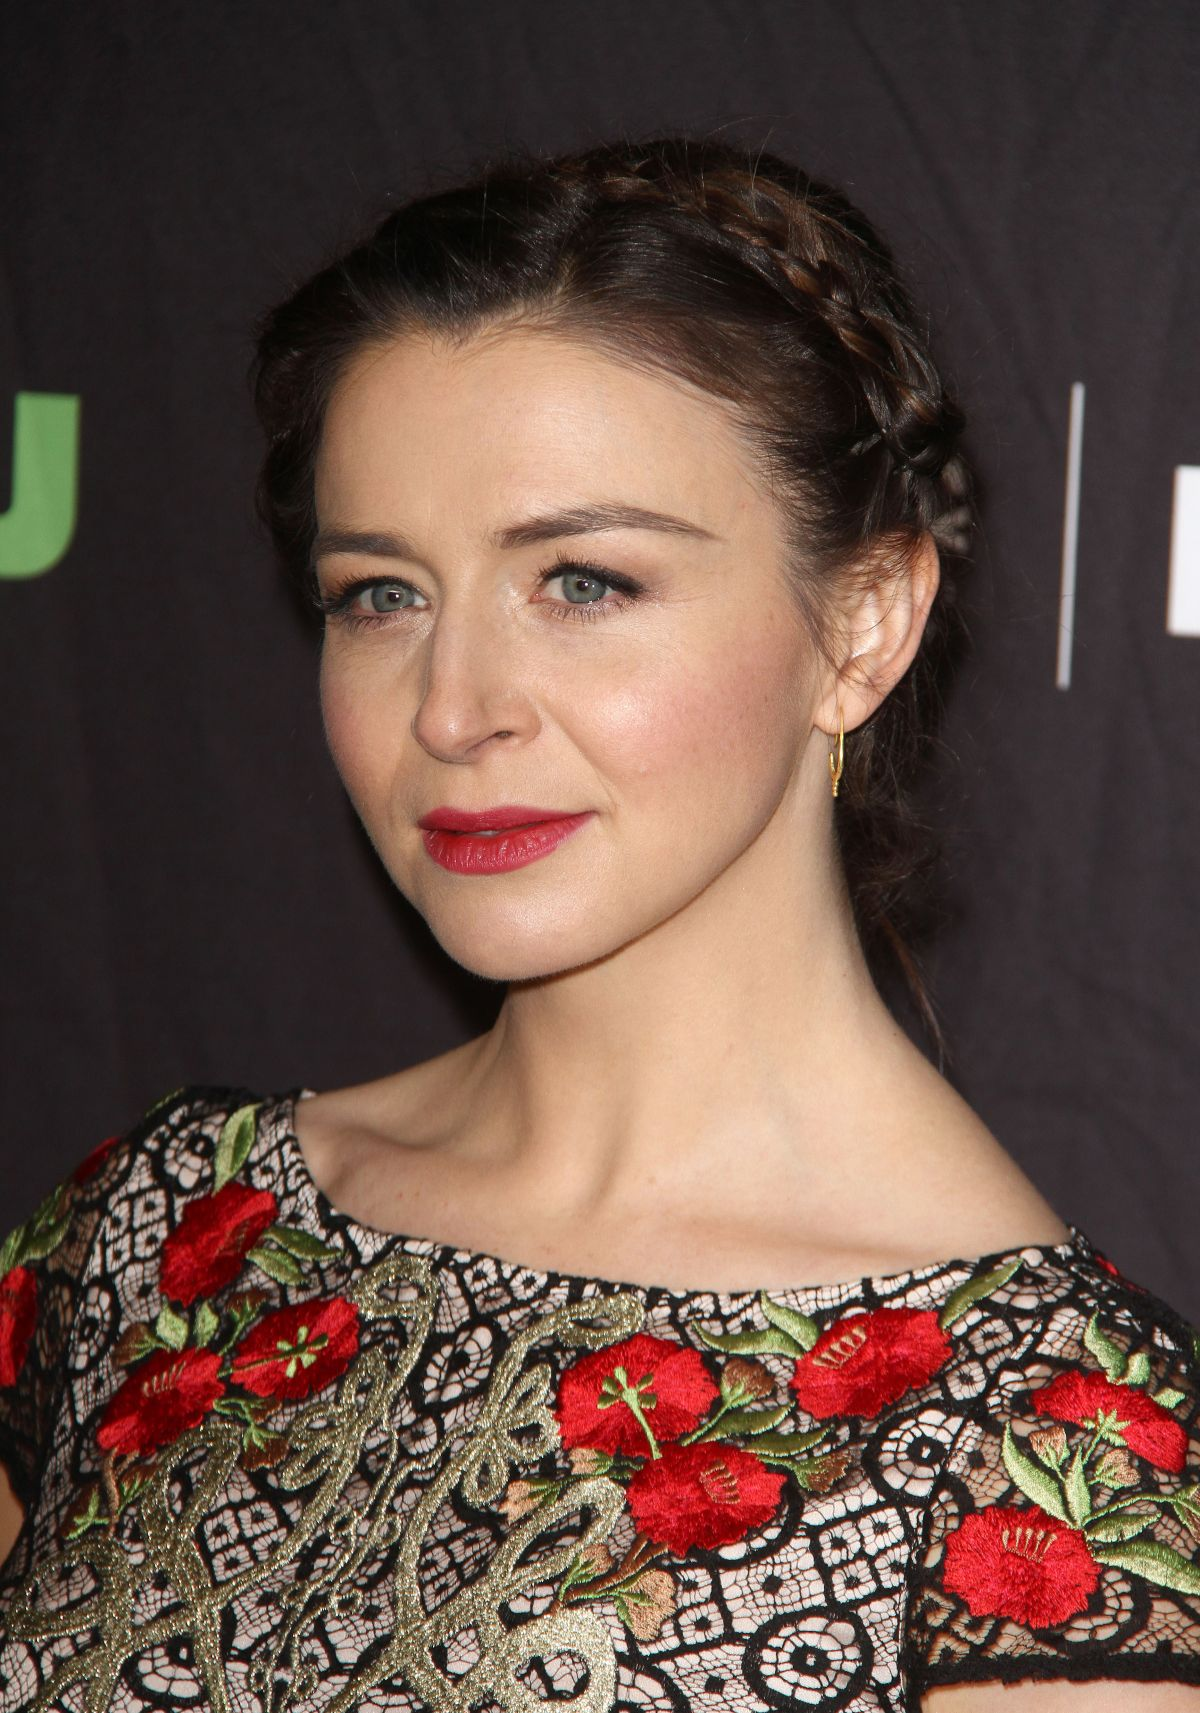 CATERINA SCORSONE at 34th Annual PaleyFest in Los Angeles 03/19/2017